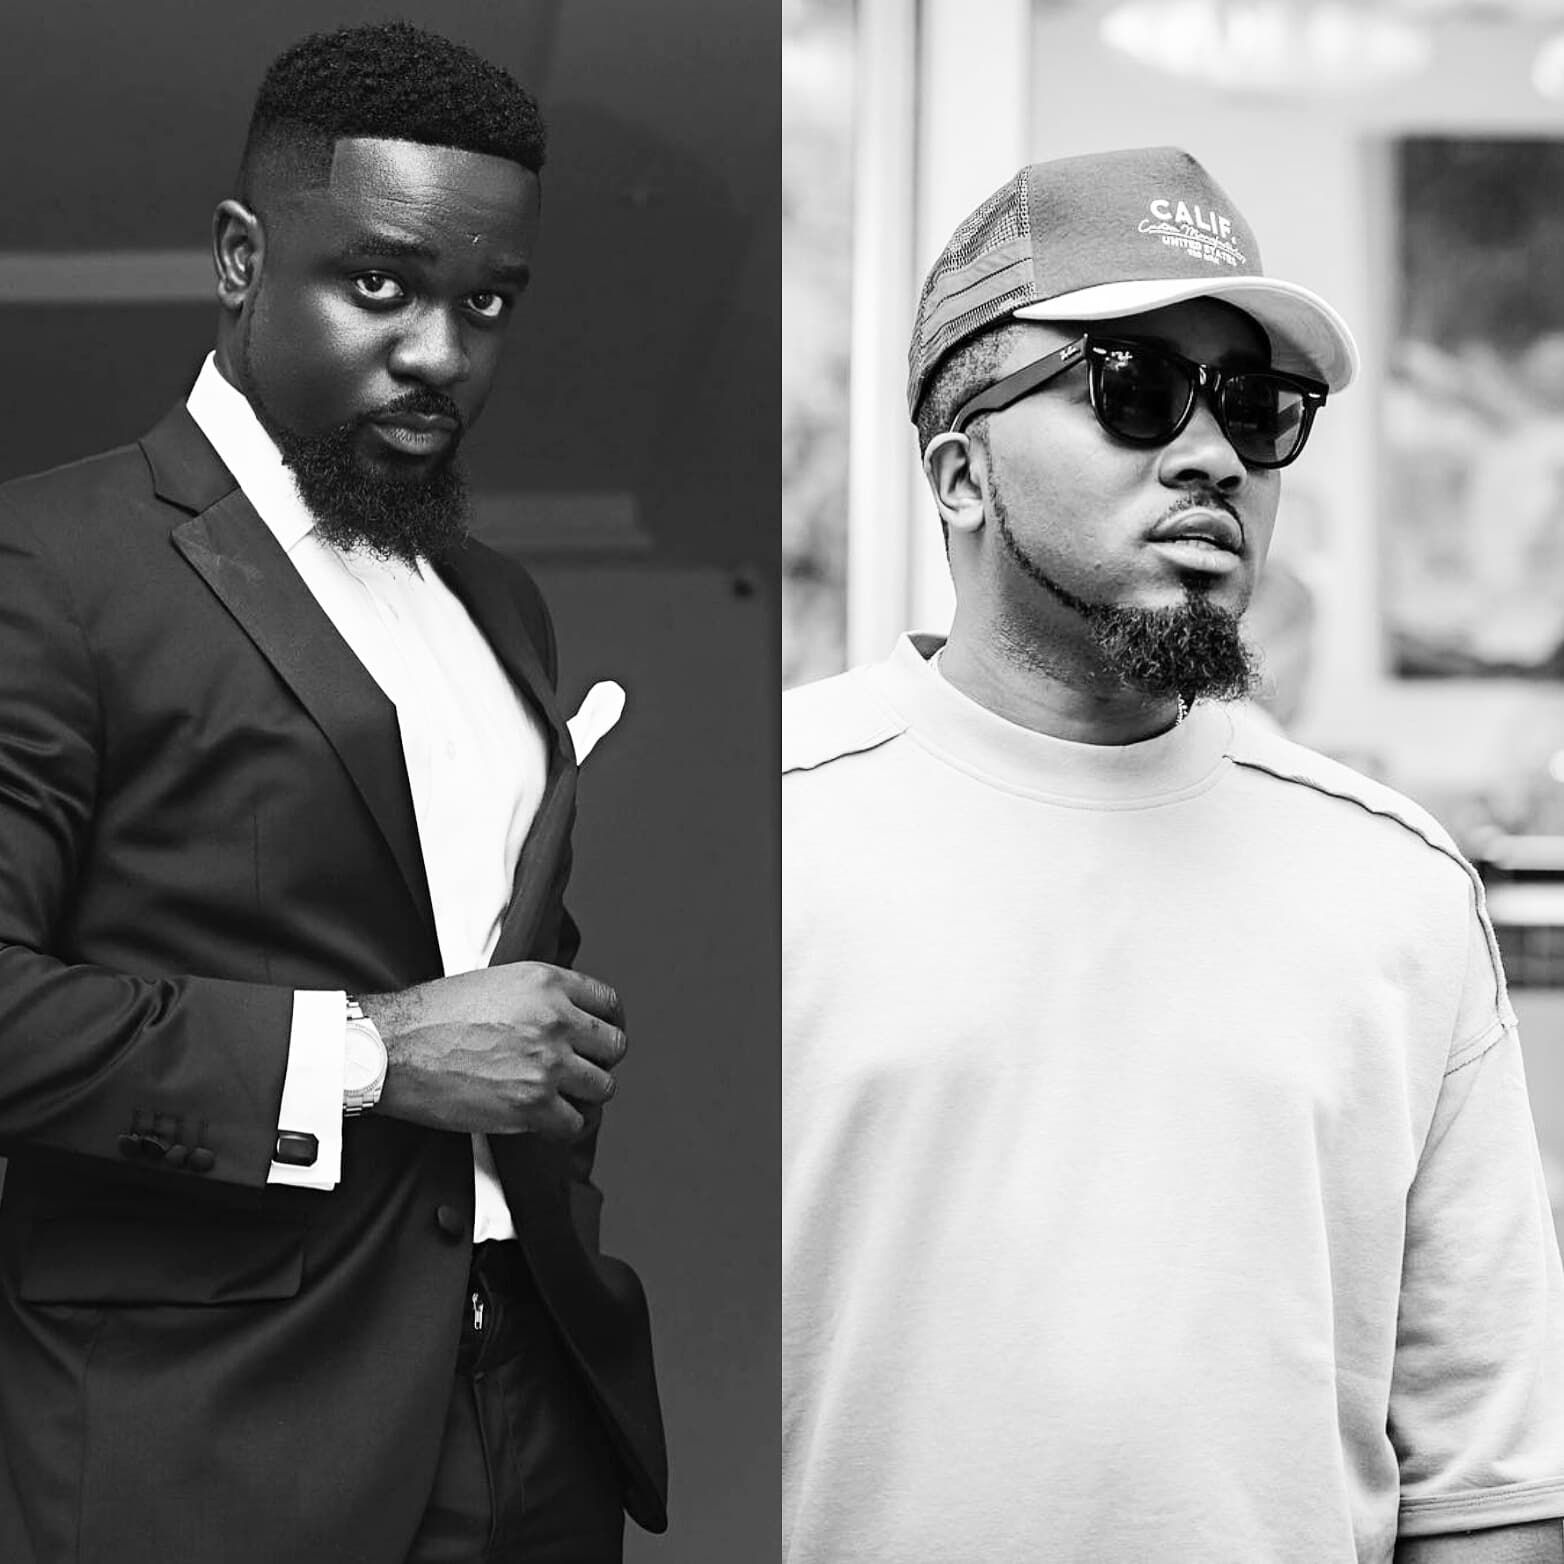 Ice Prince madly in love with Sarkodie's Jollof